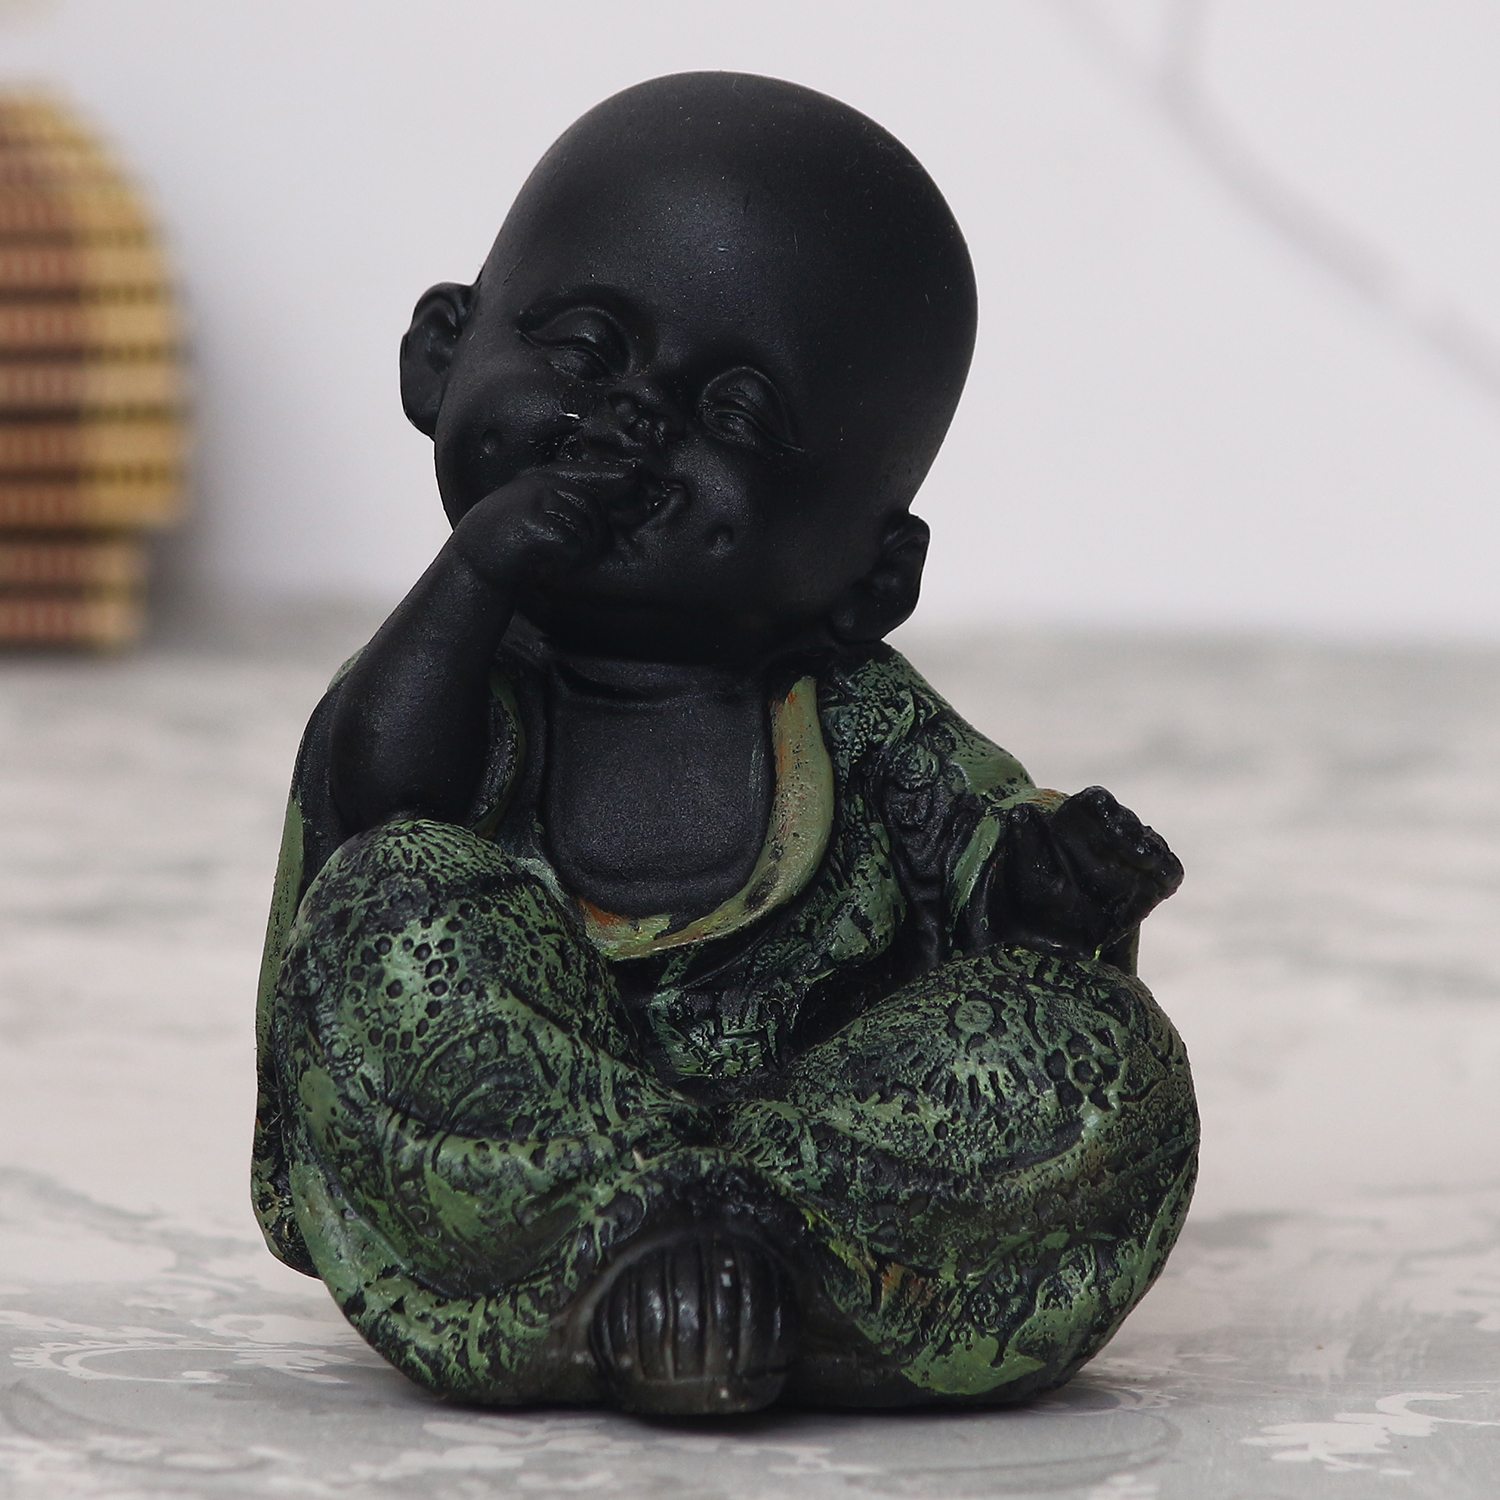 Decorative Smiling Monk Buddha - Green Indian Home Decor